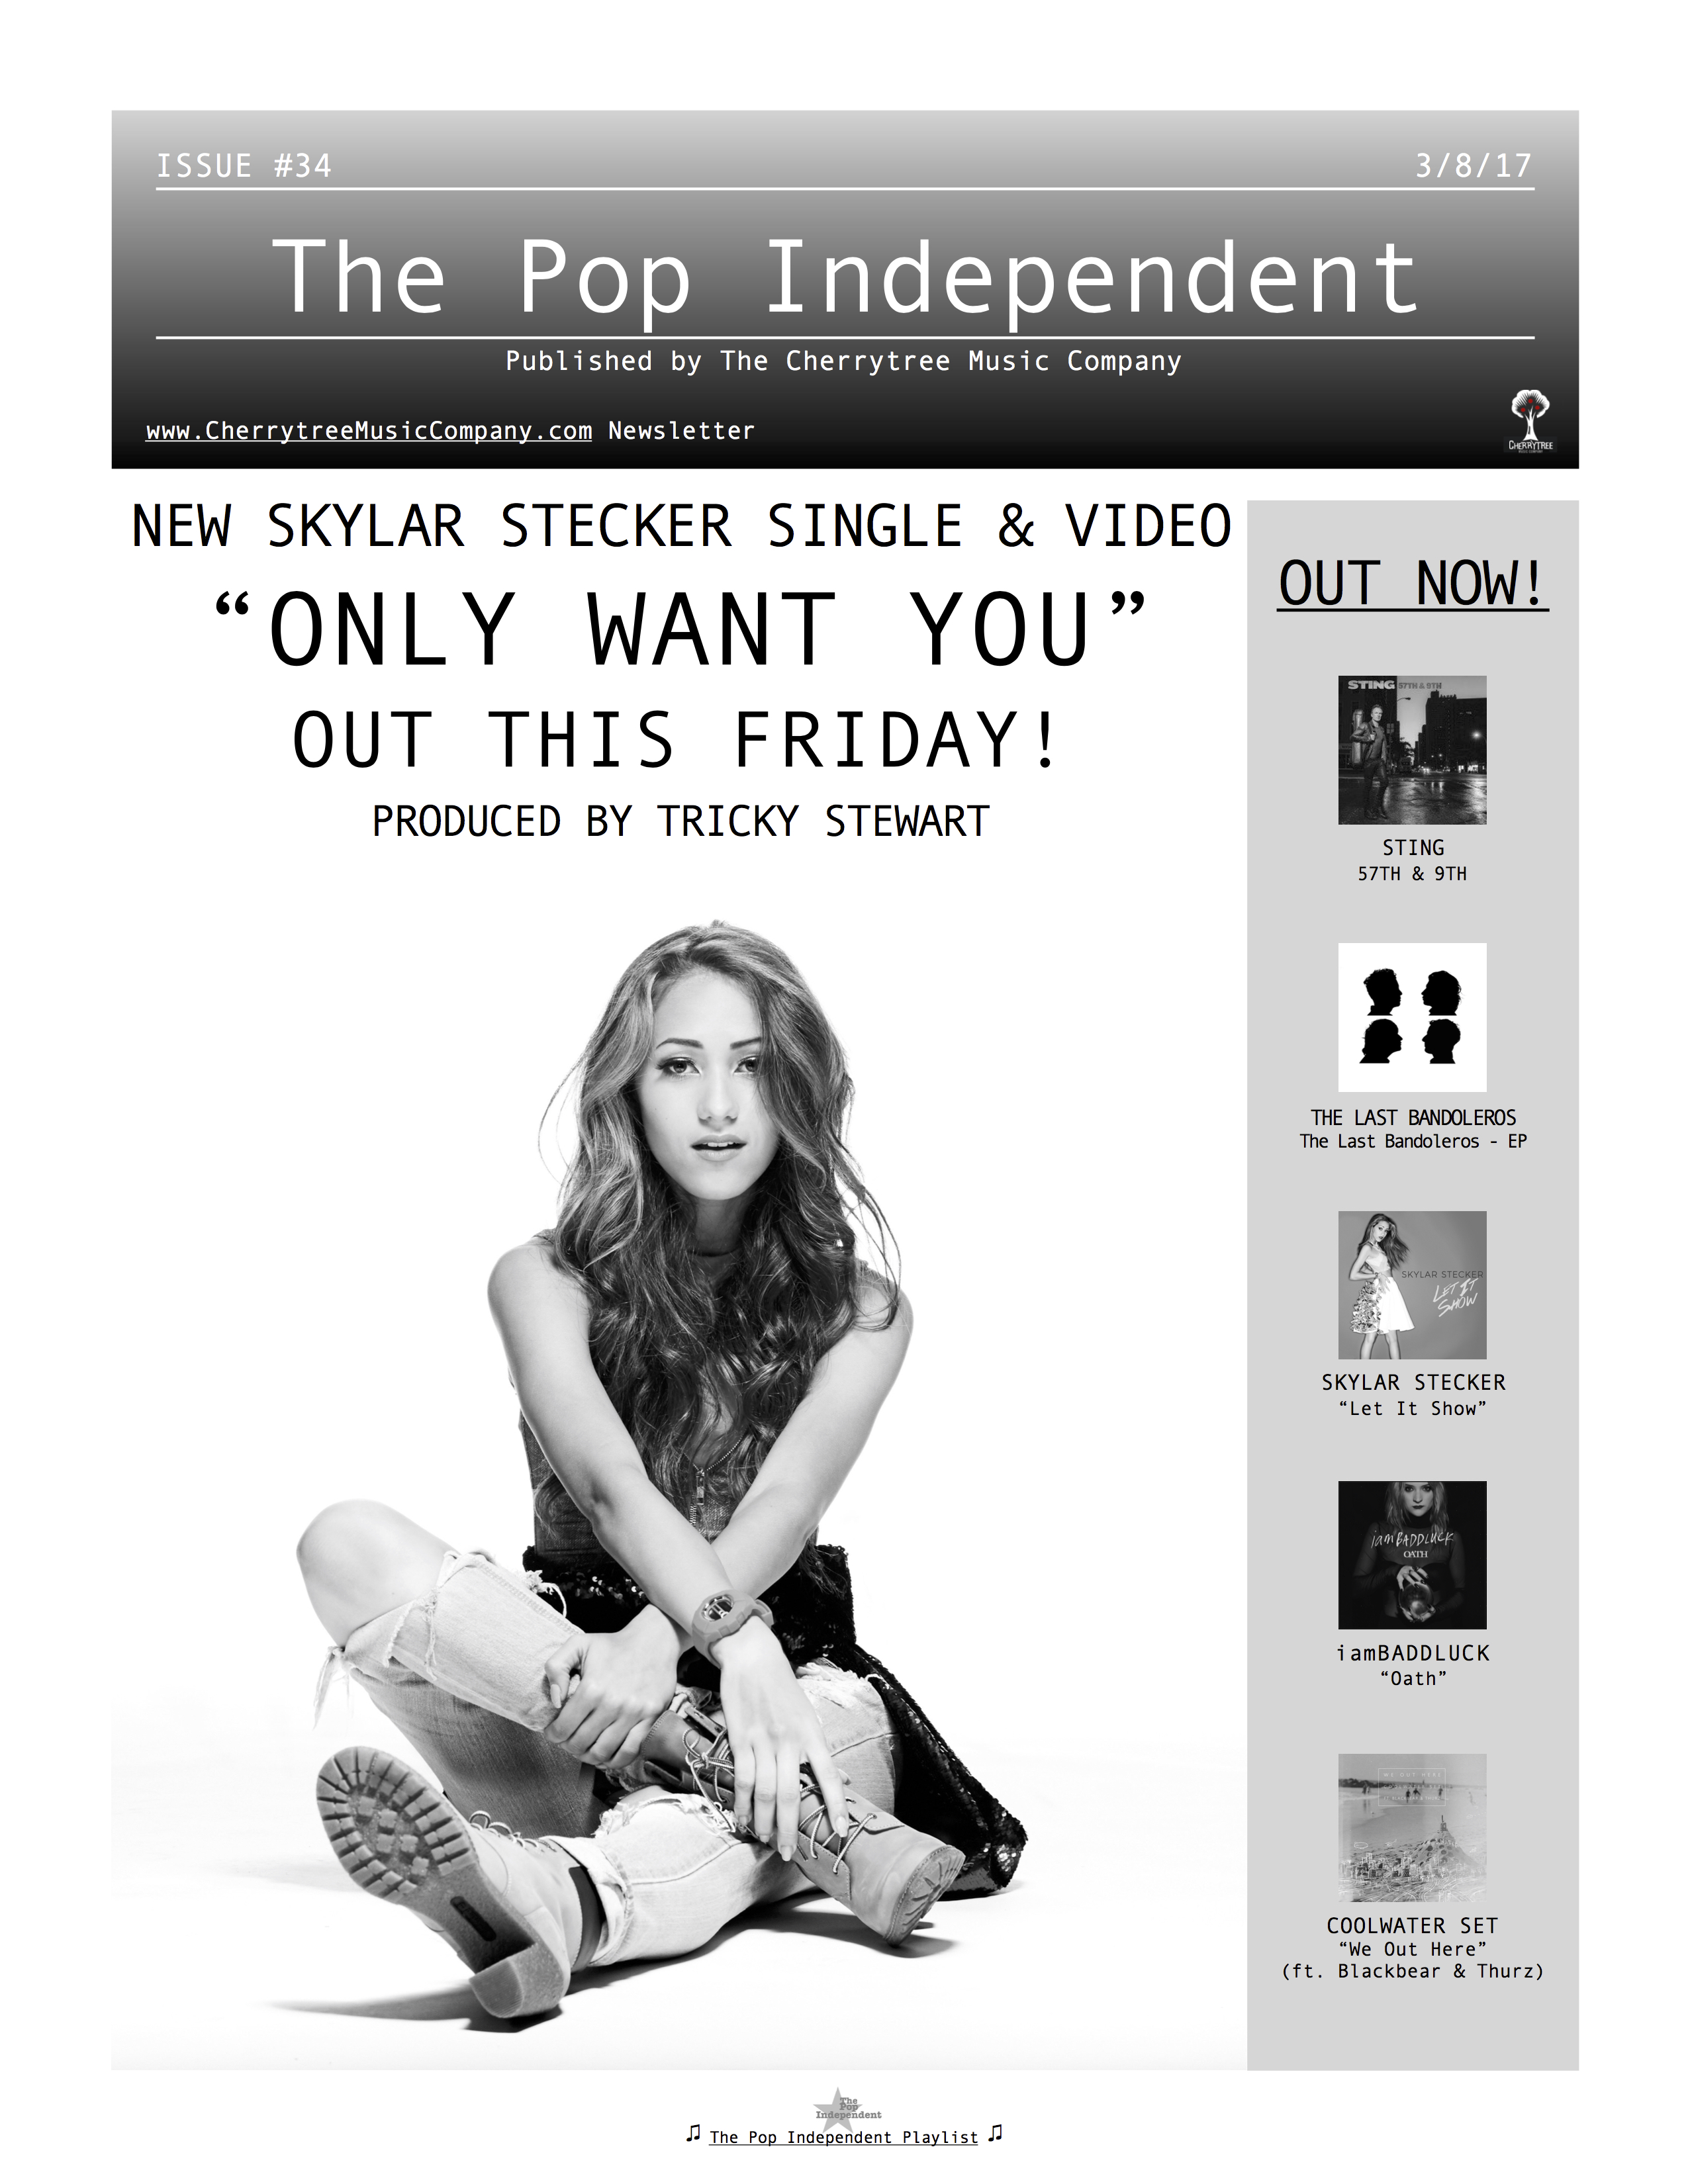 The Pop Independent, issue 34